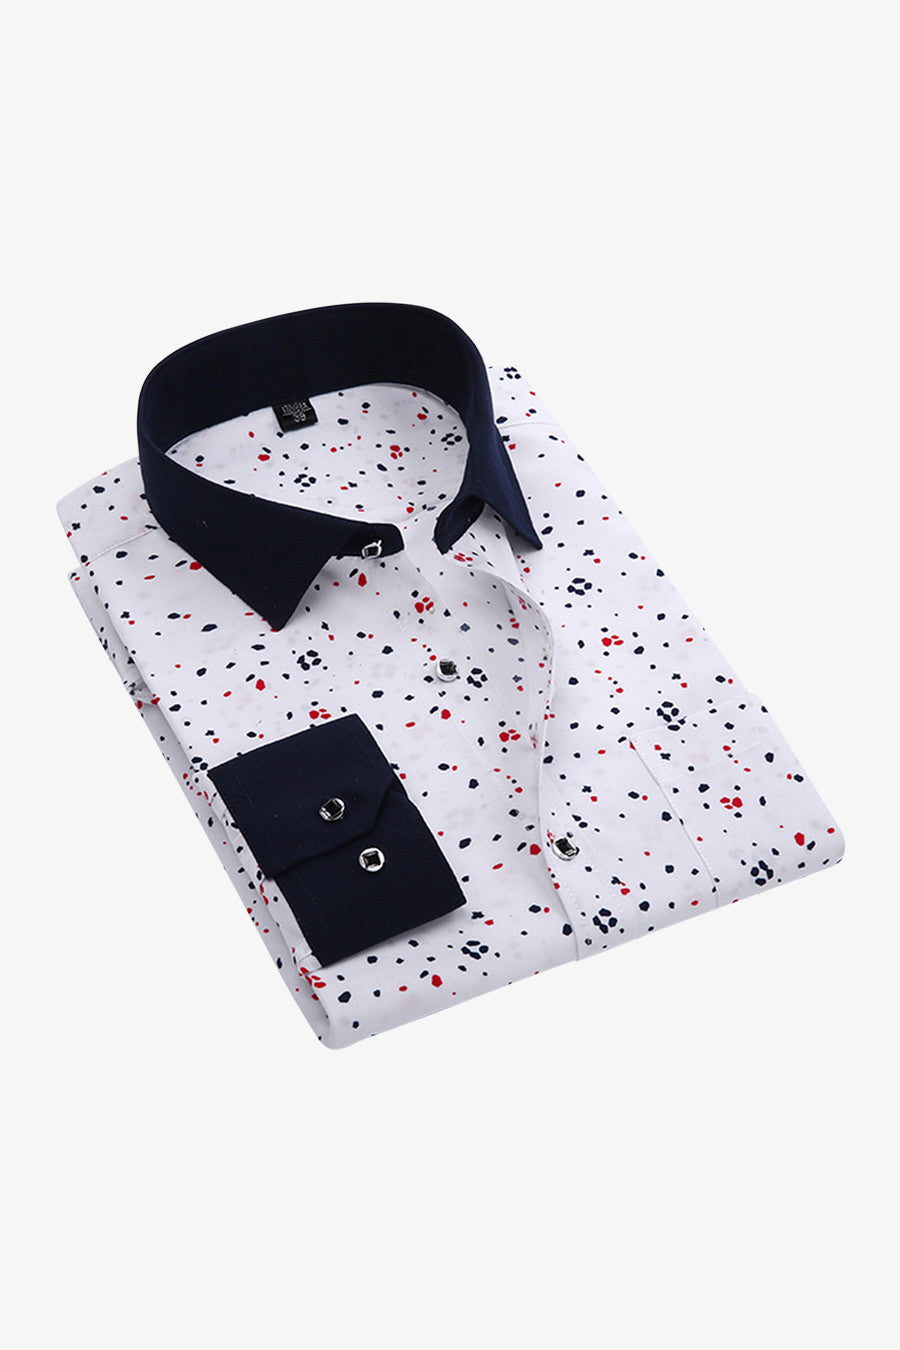 Colorful Dots Shirt In White